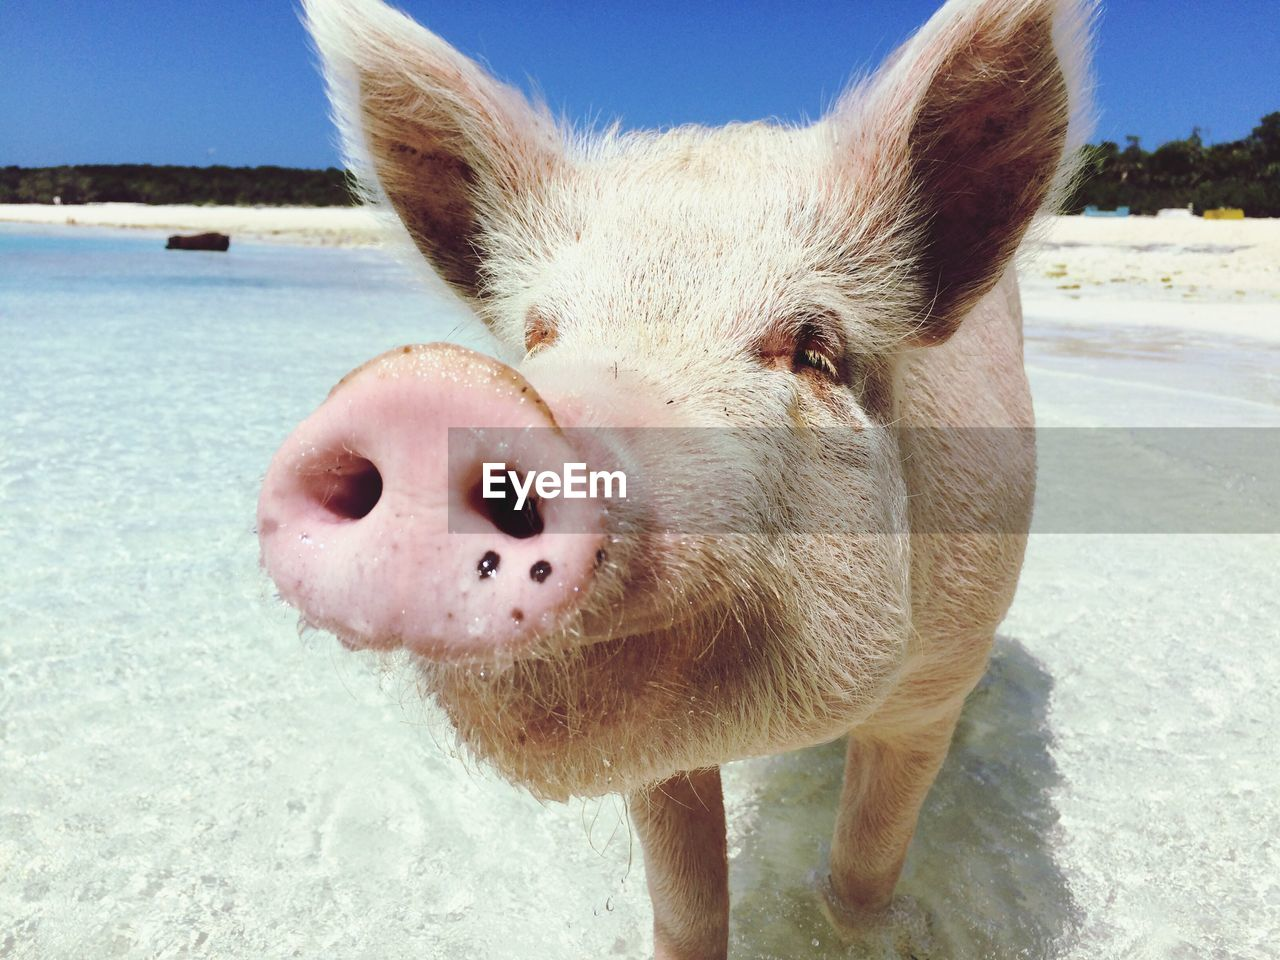 mammal, animal, one animal, animal themes, close-up, nature, land, water, pets, domestic, day, domestic animals, beach, portrait, sea, no people, looking at camera, vertebrate, outdoors, animal head, snout